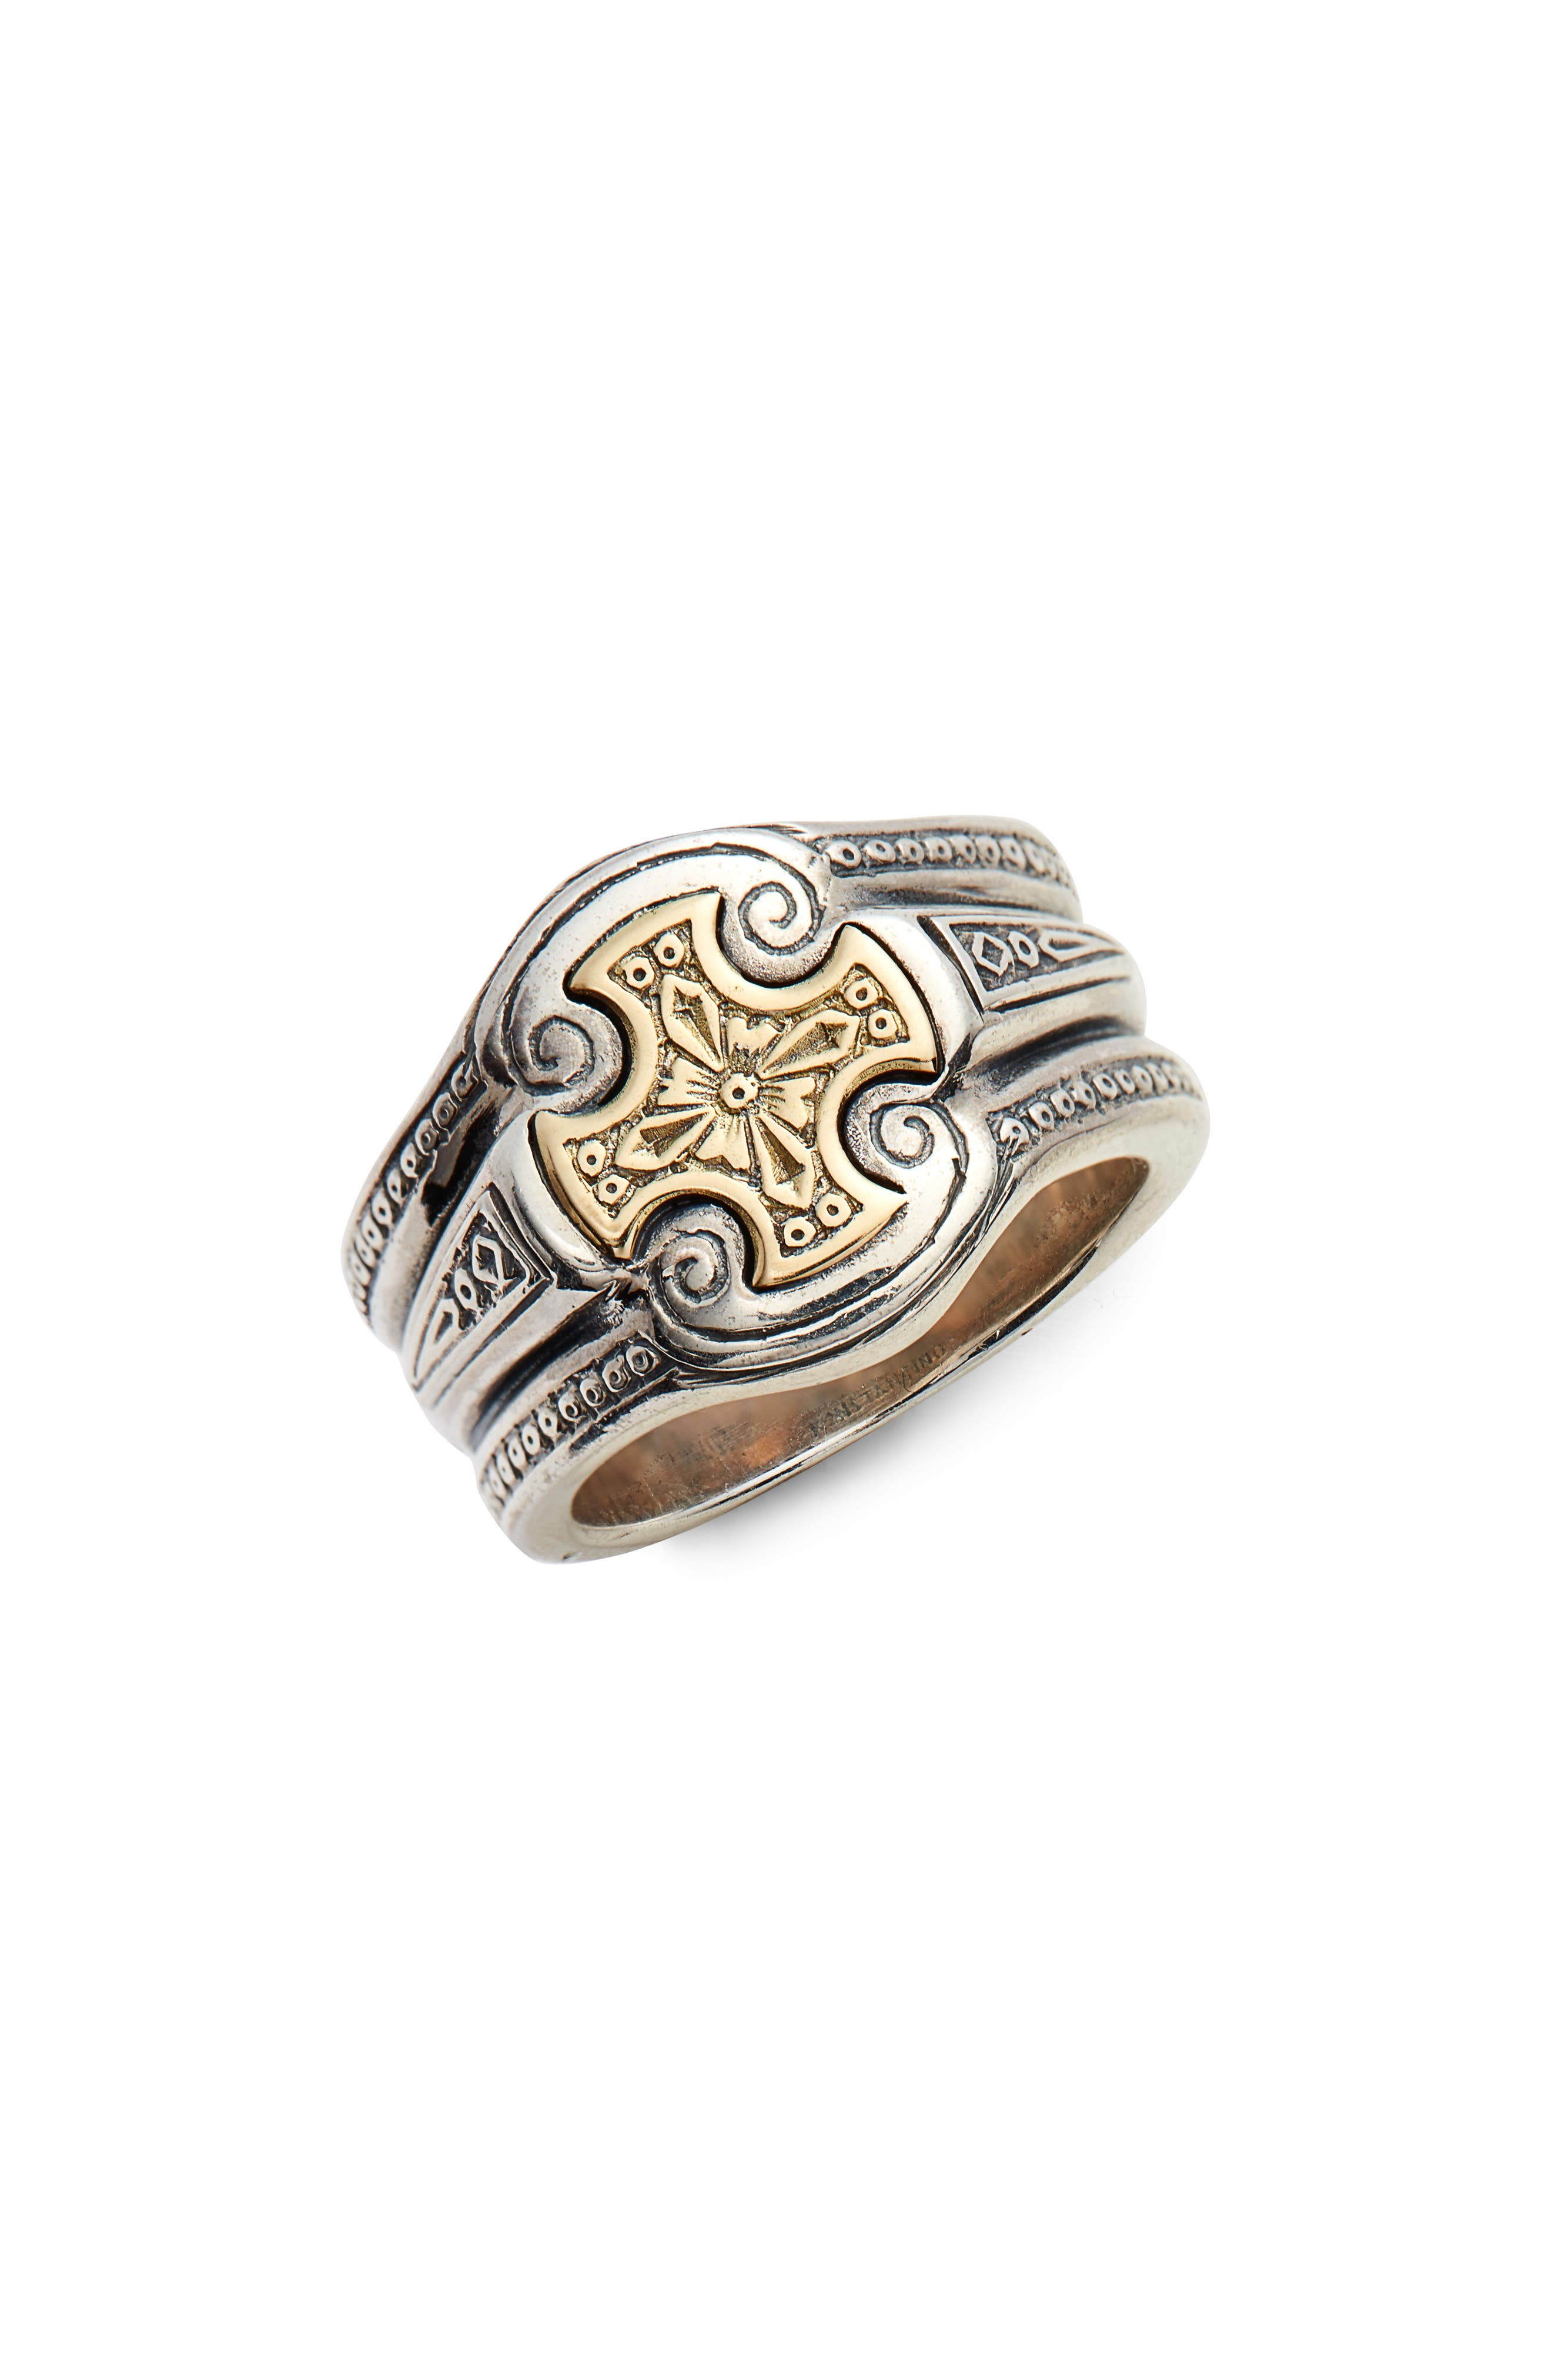 Stavros Cross Signet Ring,                         Main,                         color, SILVER/ GOLD